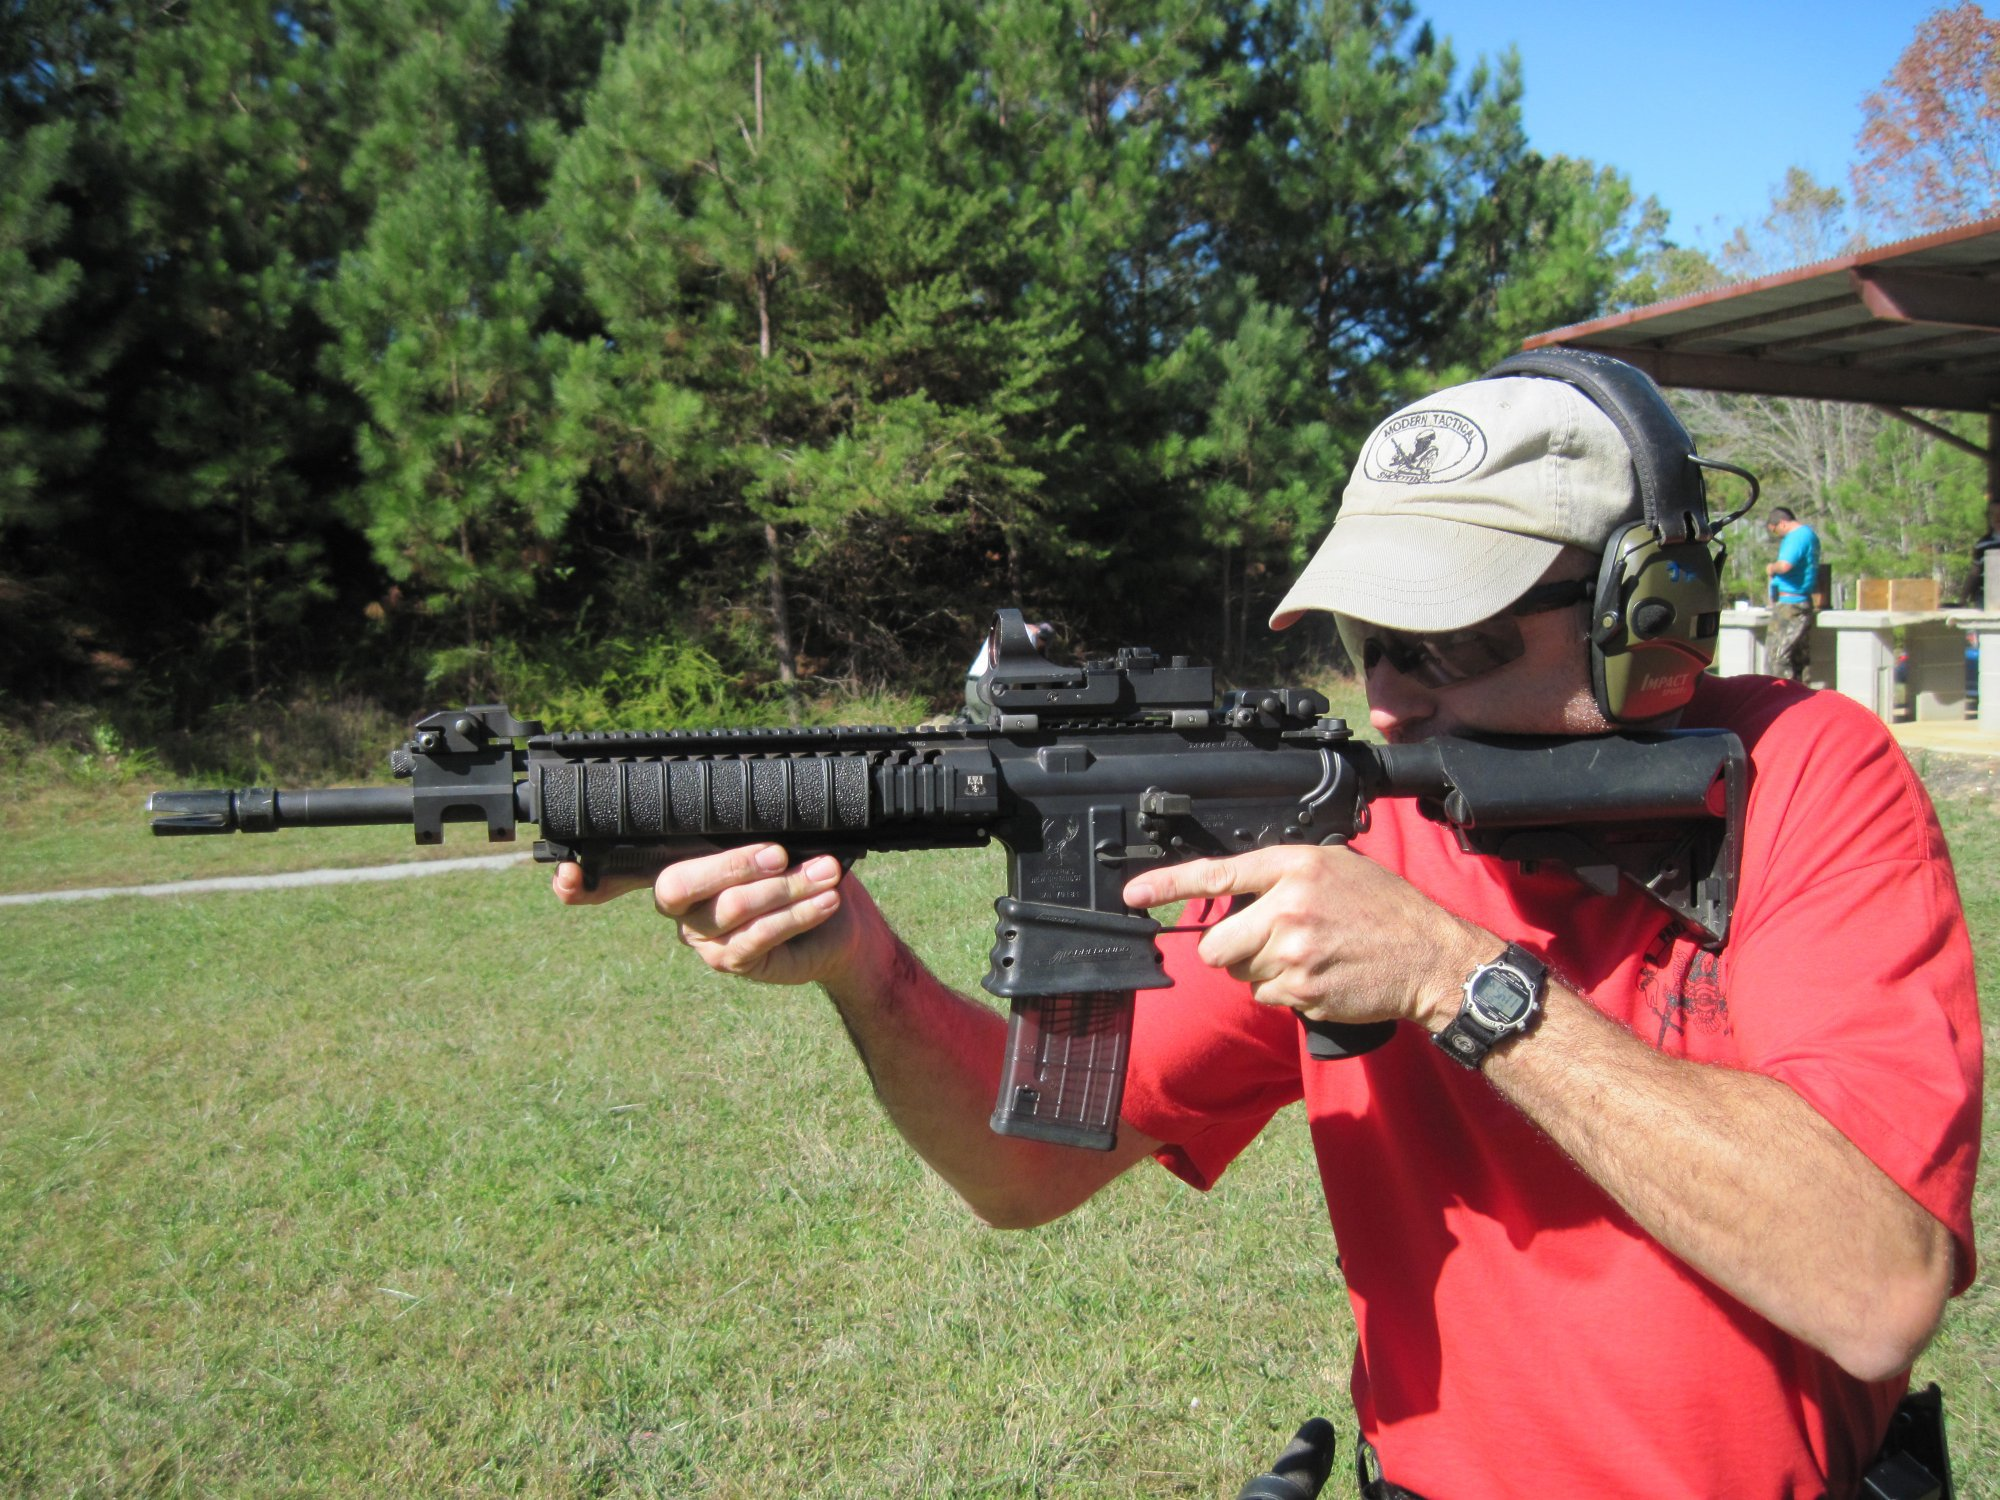 Adams Arms Jeff Gurwitch 14.5 Sabre Defense 3 Gun 1 <!  :en  >Adams Arms Gas Piston/Op Rod Retrofit Kits for Tactical and Competition AR (AR 15)/M4/M4A1 Carbines/SBRs: Smooth Shooting, Accurate, and Reliable (Photos and Video!)<!  :  >